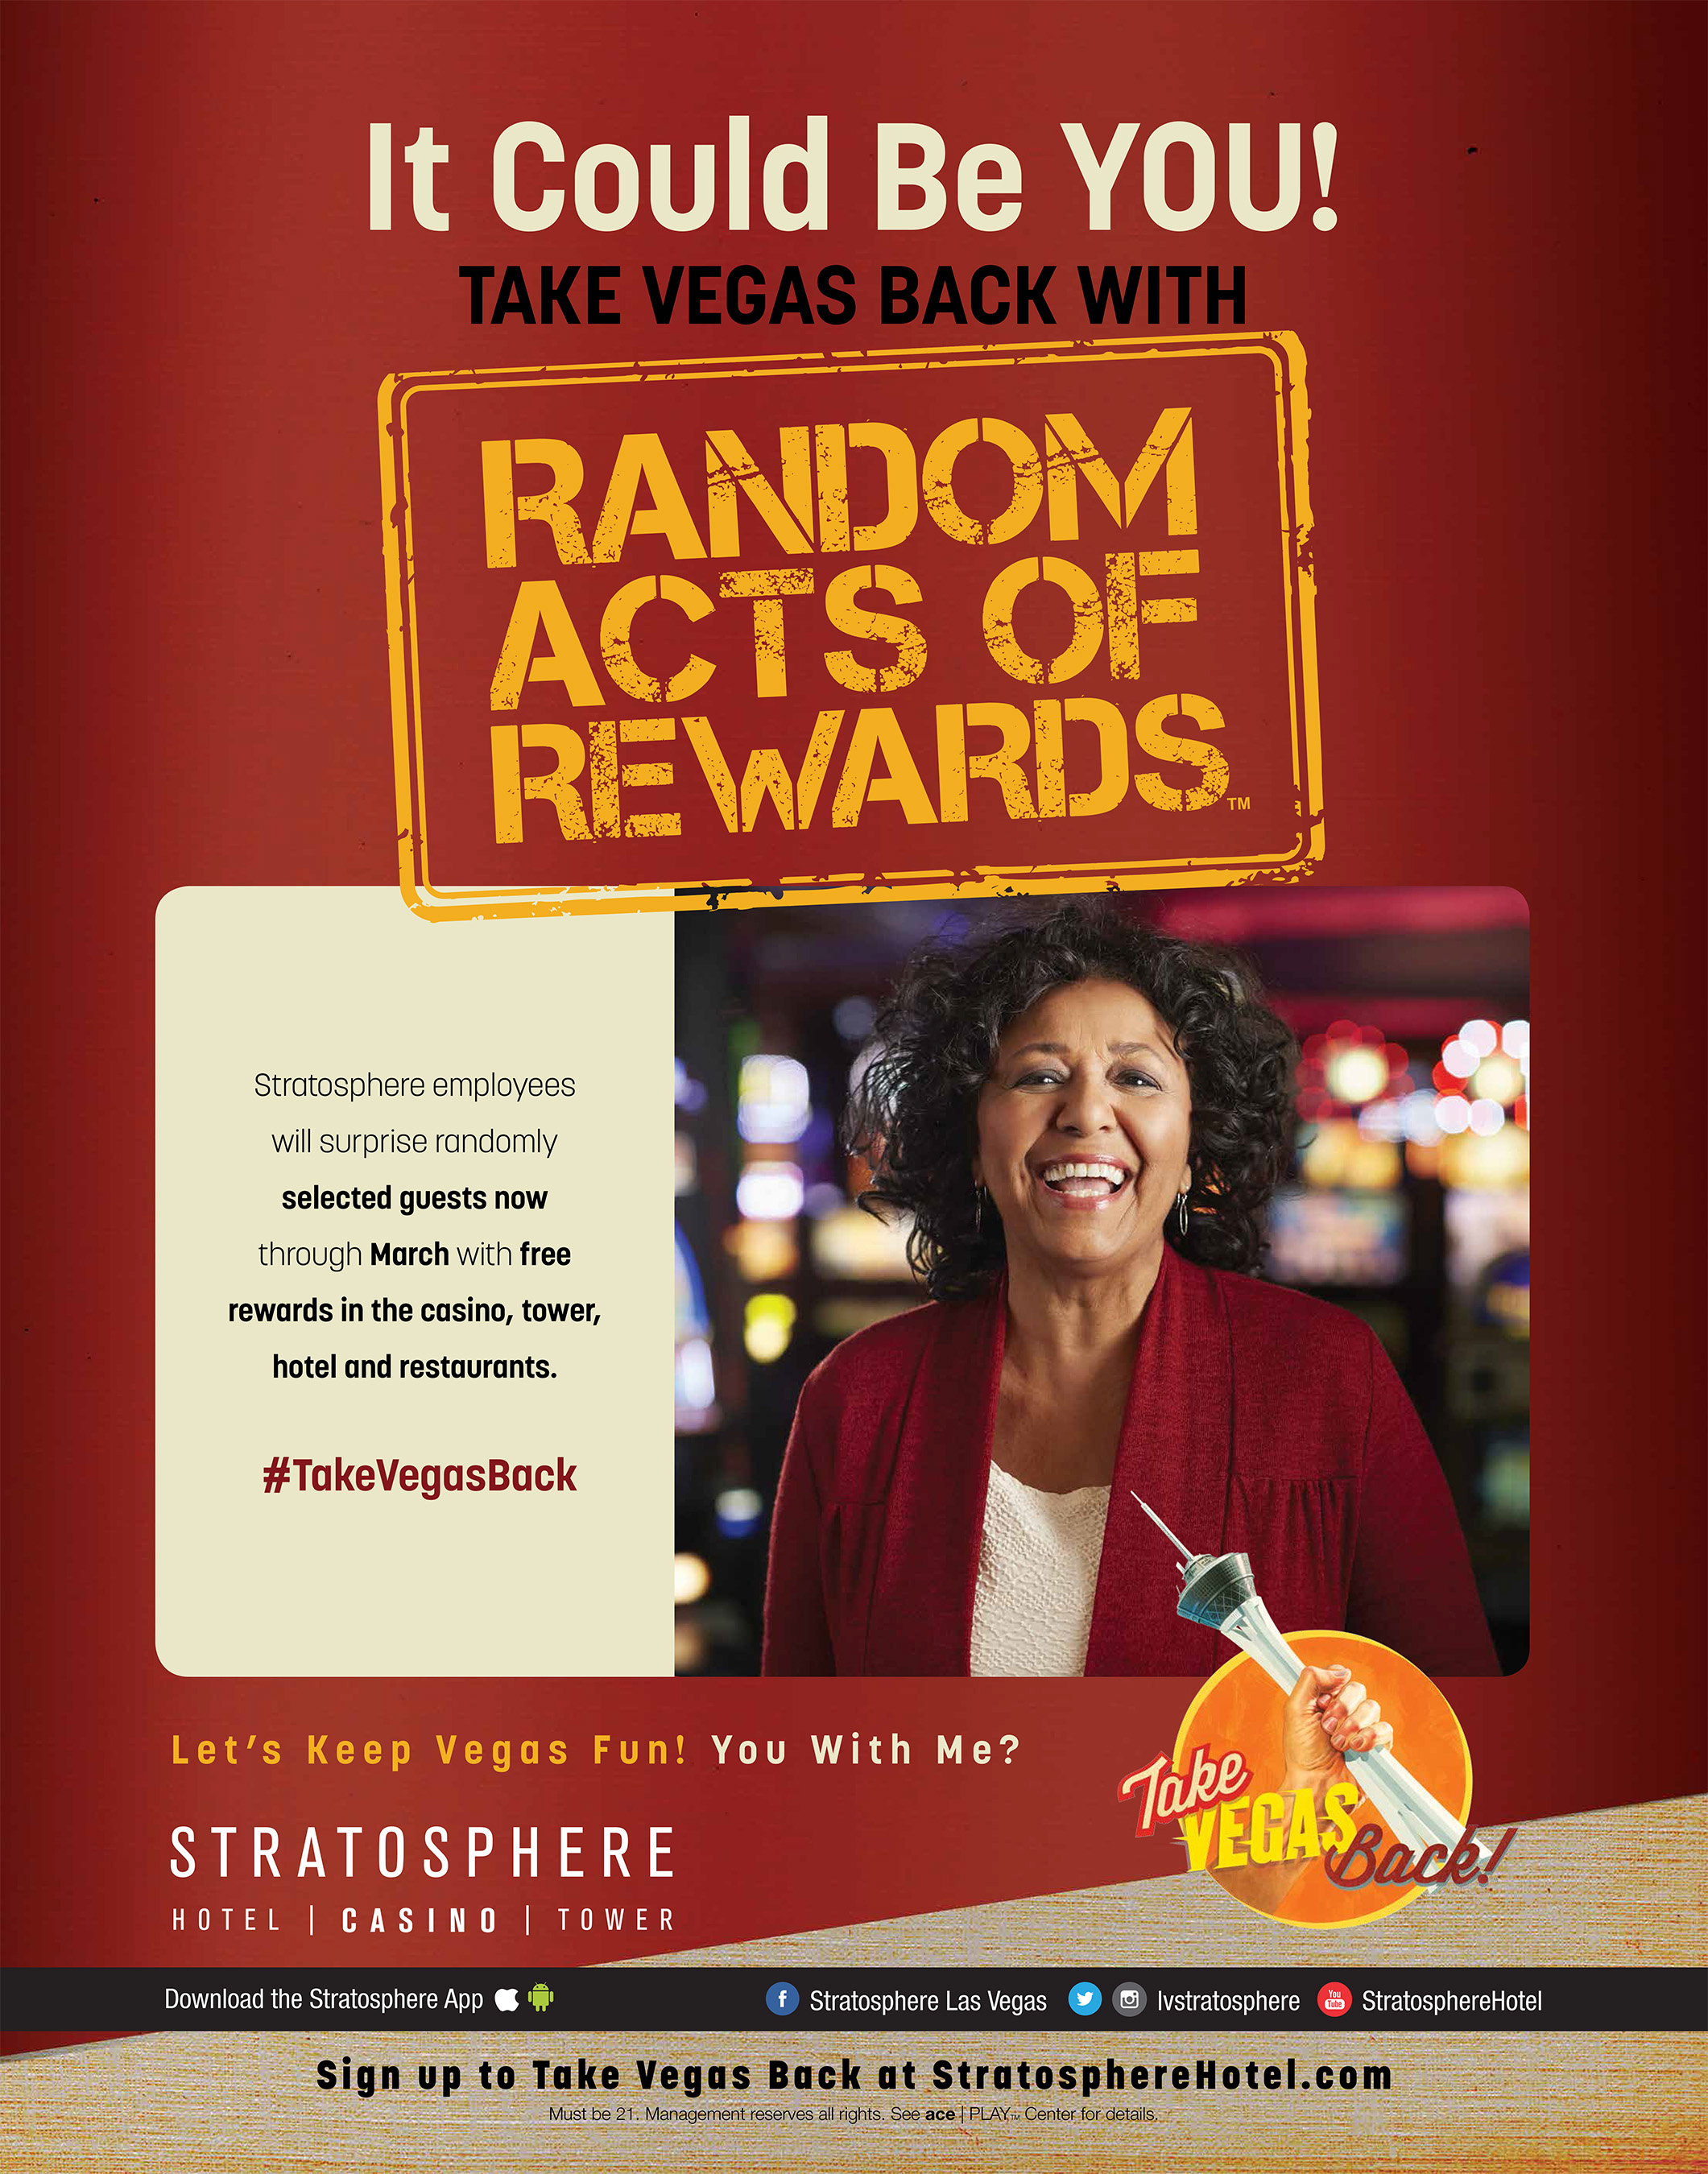 In addition to offering guests affordable options every day, Stratosphere will also surprise its guests with Random Acts of RewardsTM, an extension of its Take Vegas Back campaign.